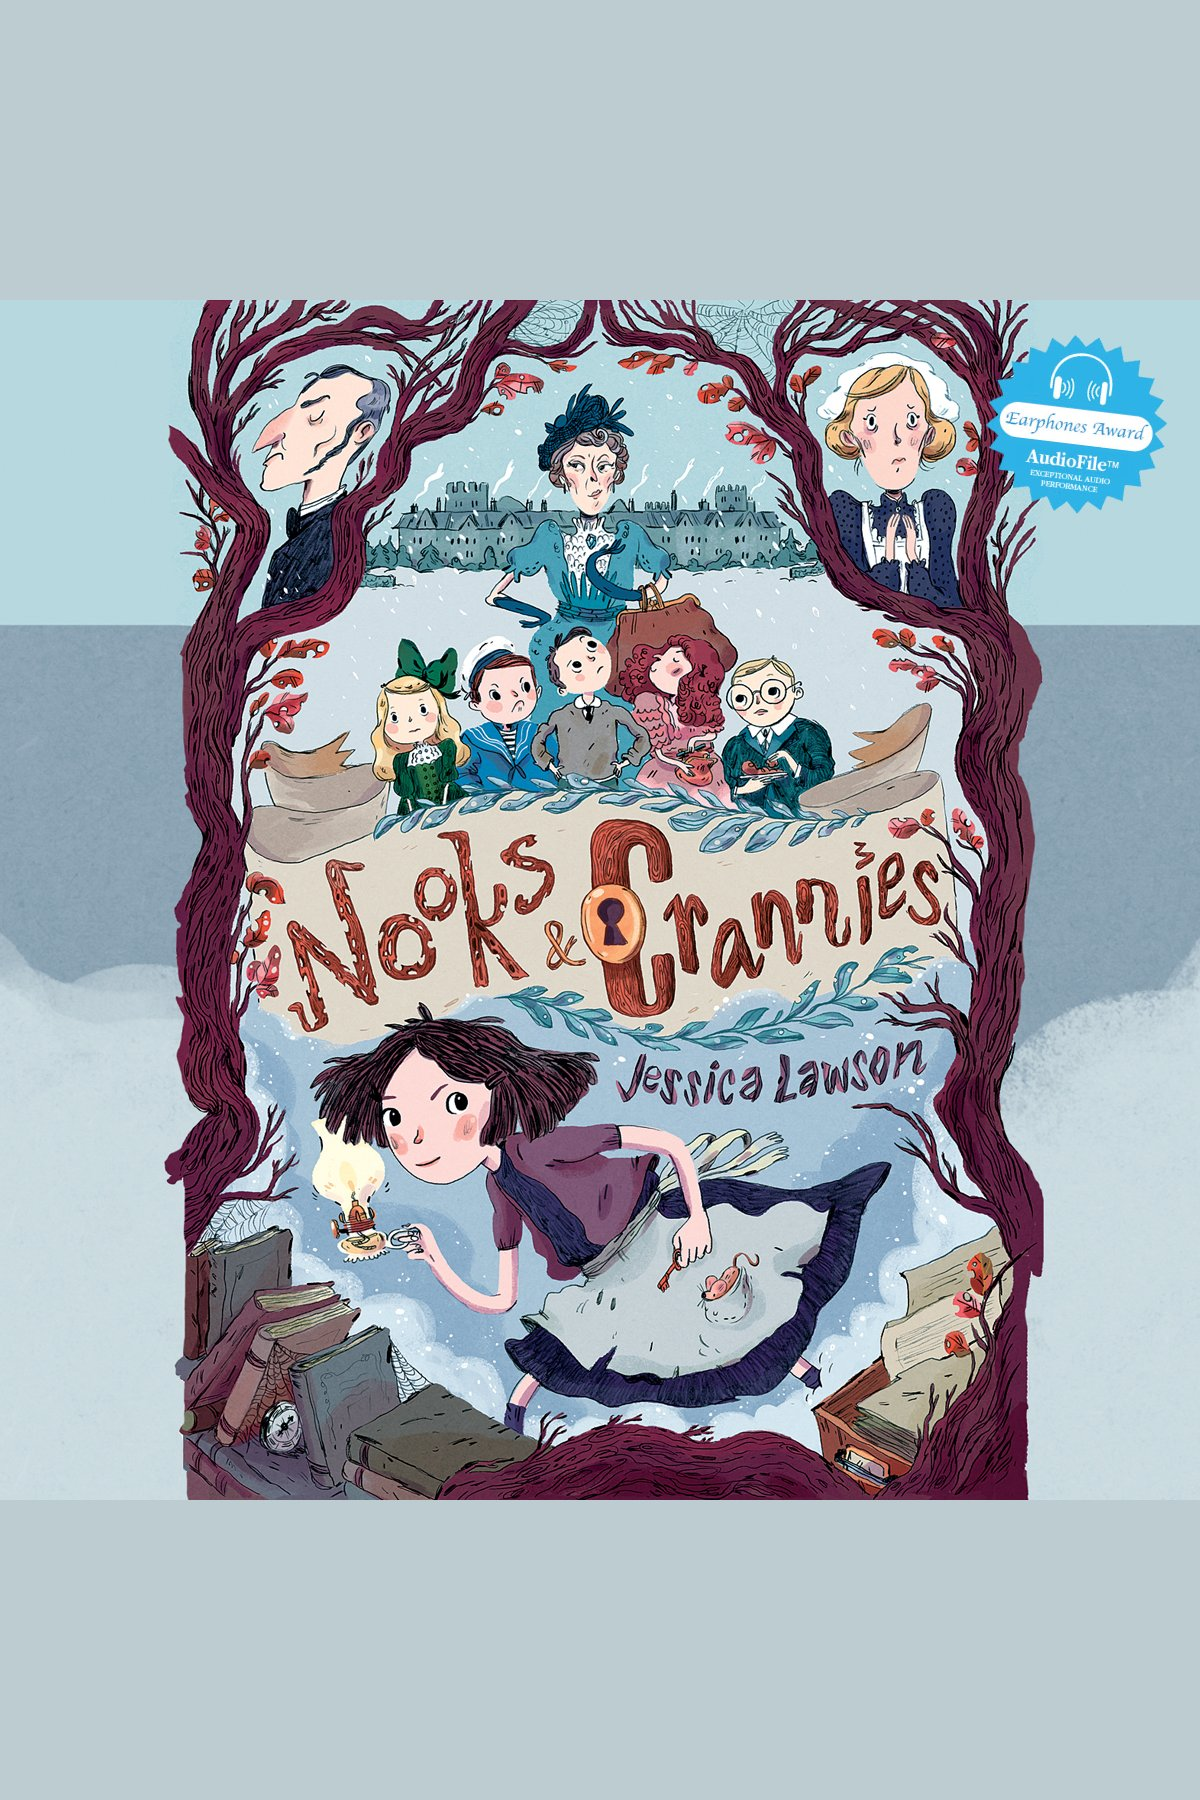 Nooks & crannies cover image